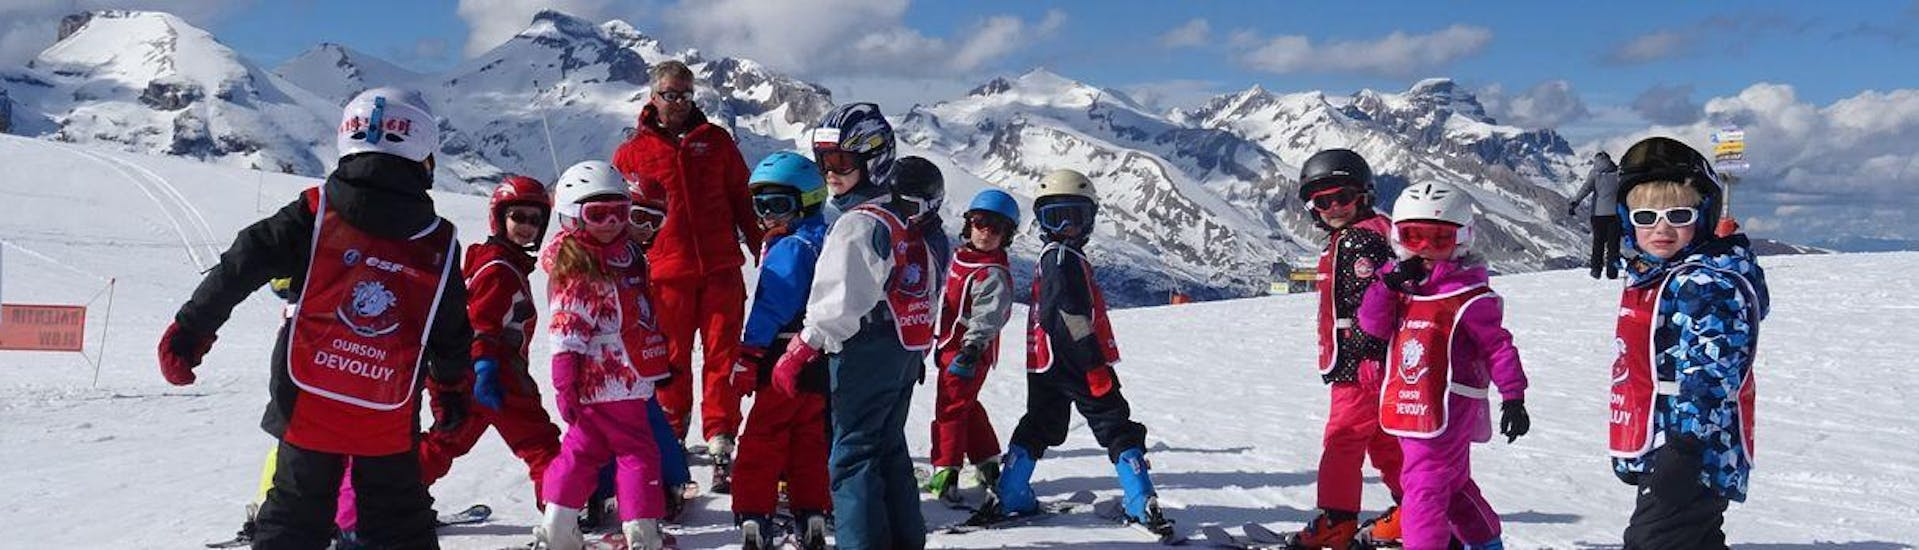 Kids are standing at the top of the slope ready to start their Kids Ski Lessons (6-12 y.) - February - Afternoon - Beginner with the ski school ESF du Dévoluy.